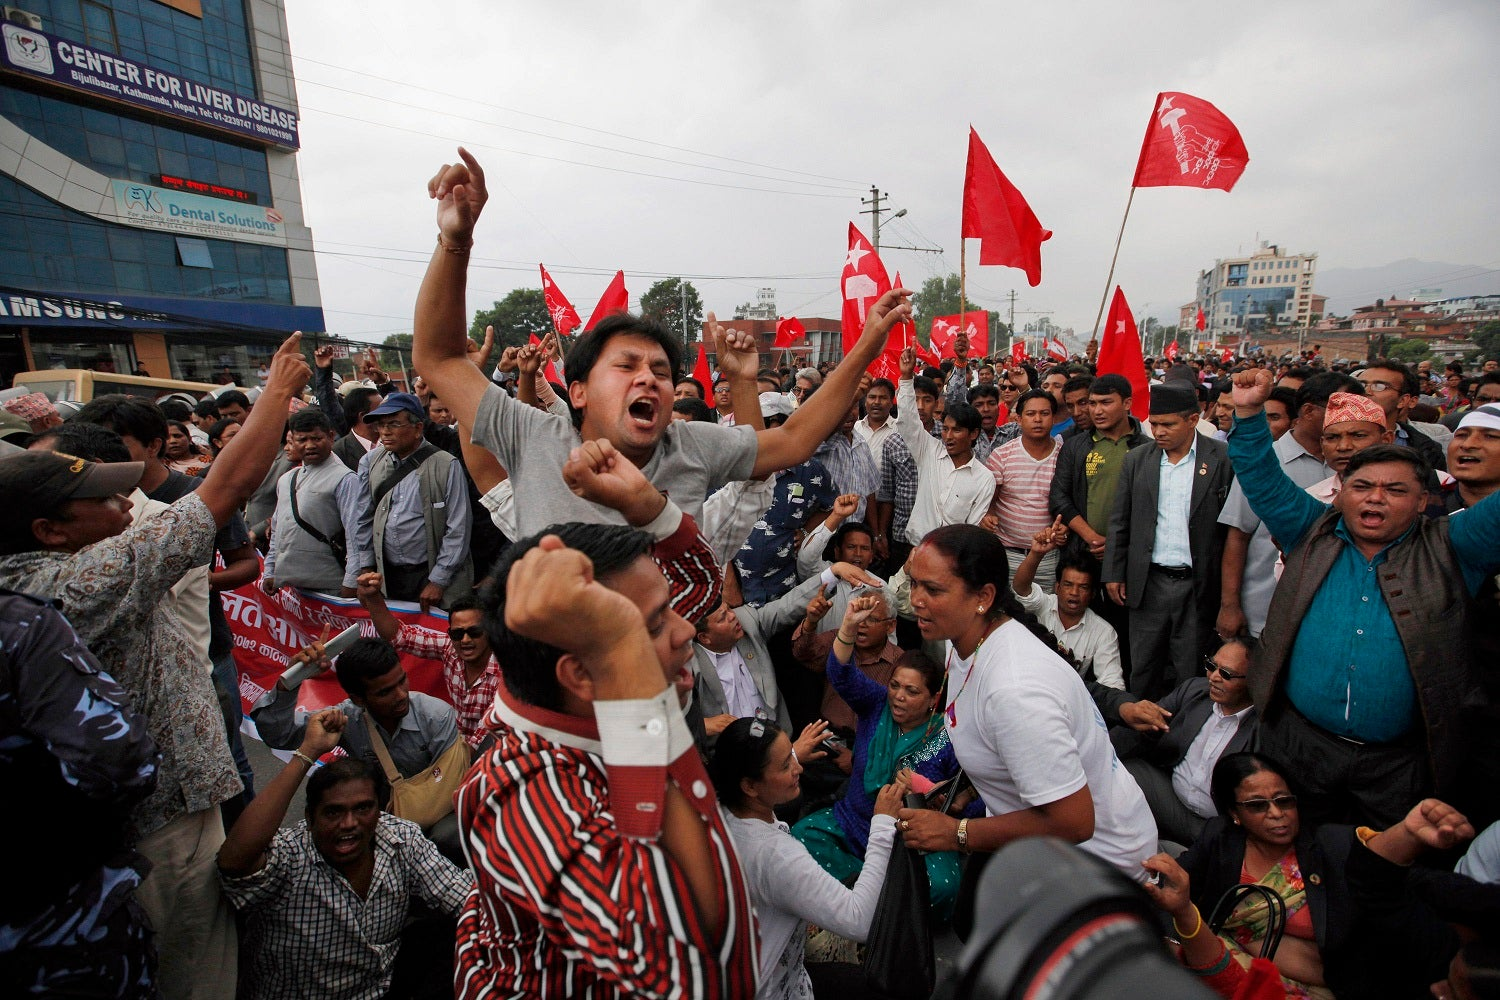 Nepalese activists of the Dalit community, also known as the untouchables, shout slogans during a protest near the Nepalese Constituent Assembly Hall in Kathmandu, Nepal, Wednesday, Aug. 5, 2015.  © 2015 AP Photo/Niranjan Shrestha